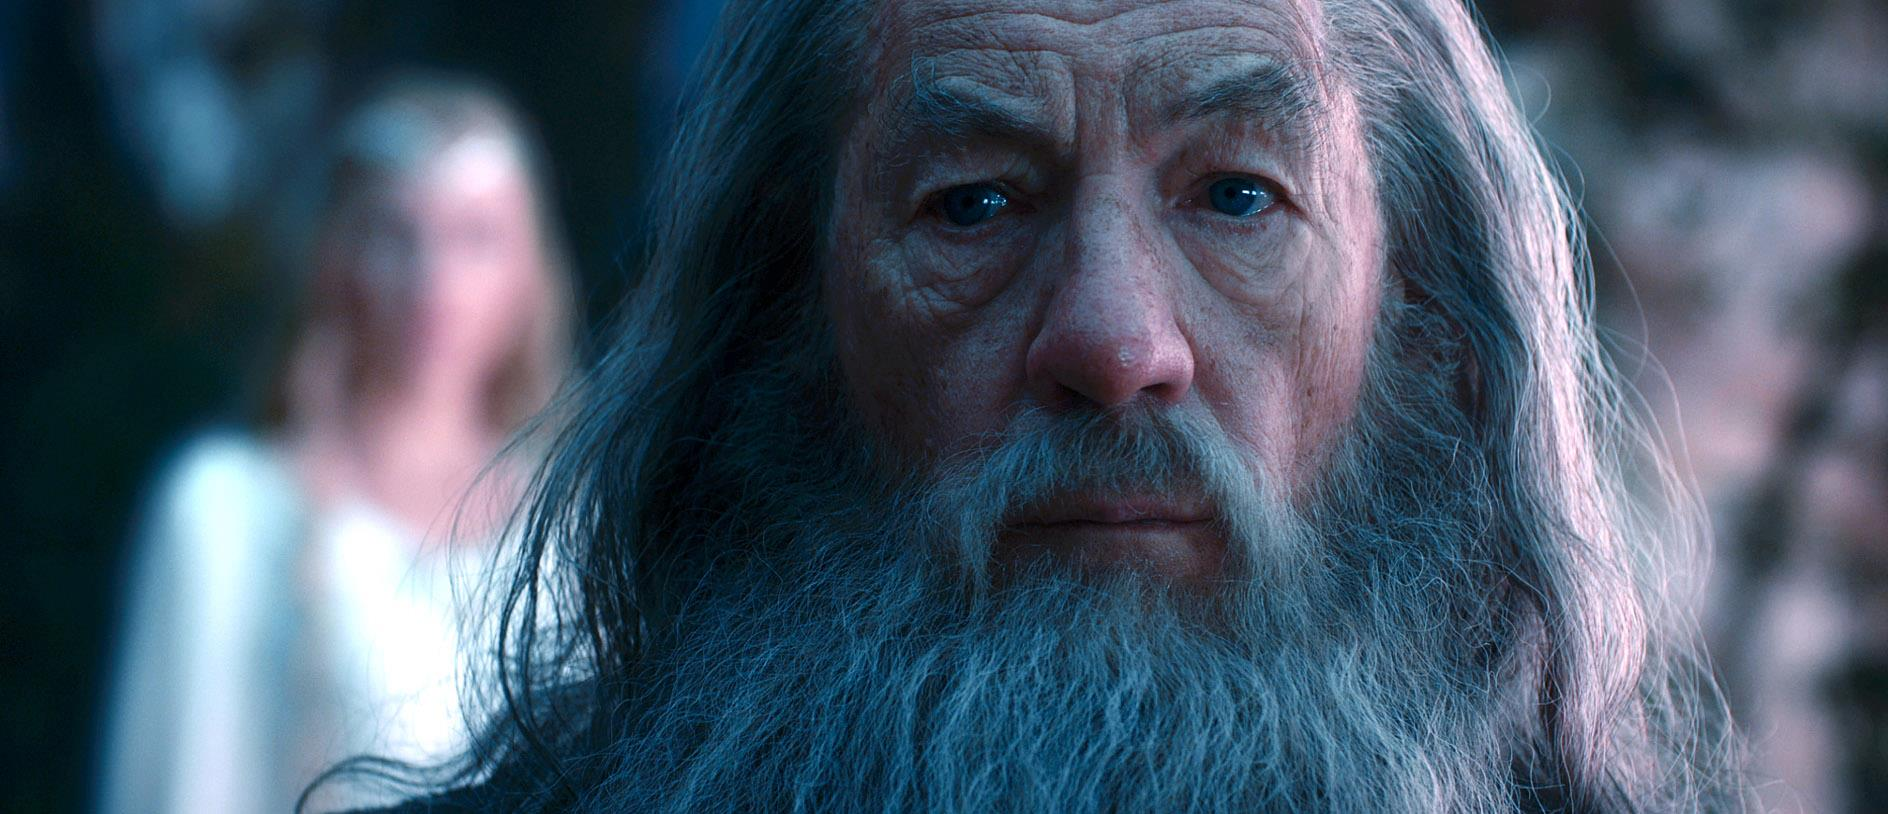 Gandalf is watching you - but who is watching Gandalf? (c) Warner Bros.